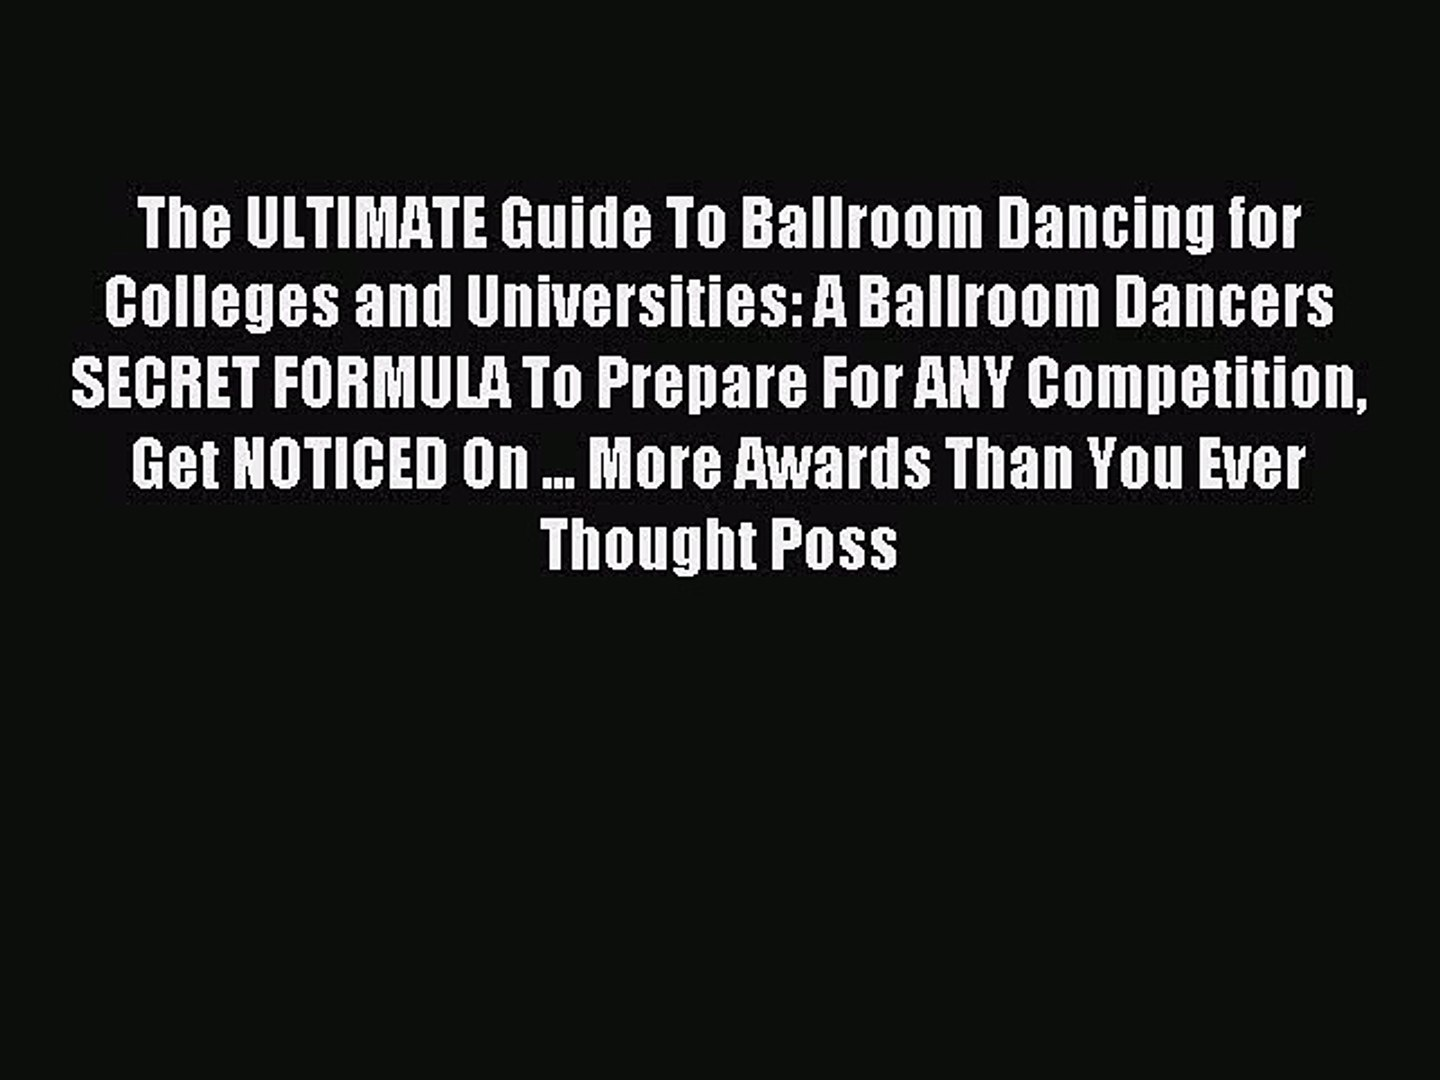 Read The ULTIMATE Guide To Ballroom Dancing for Colleges and Universities: A Ballroom Dancers